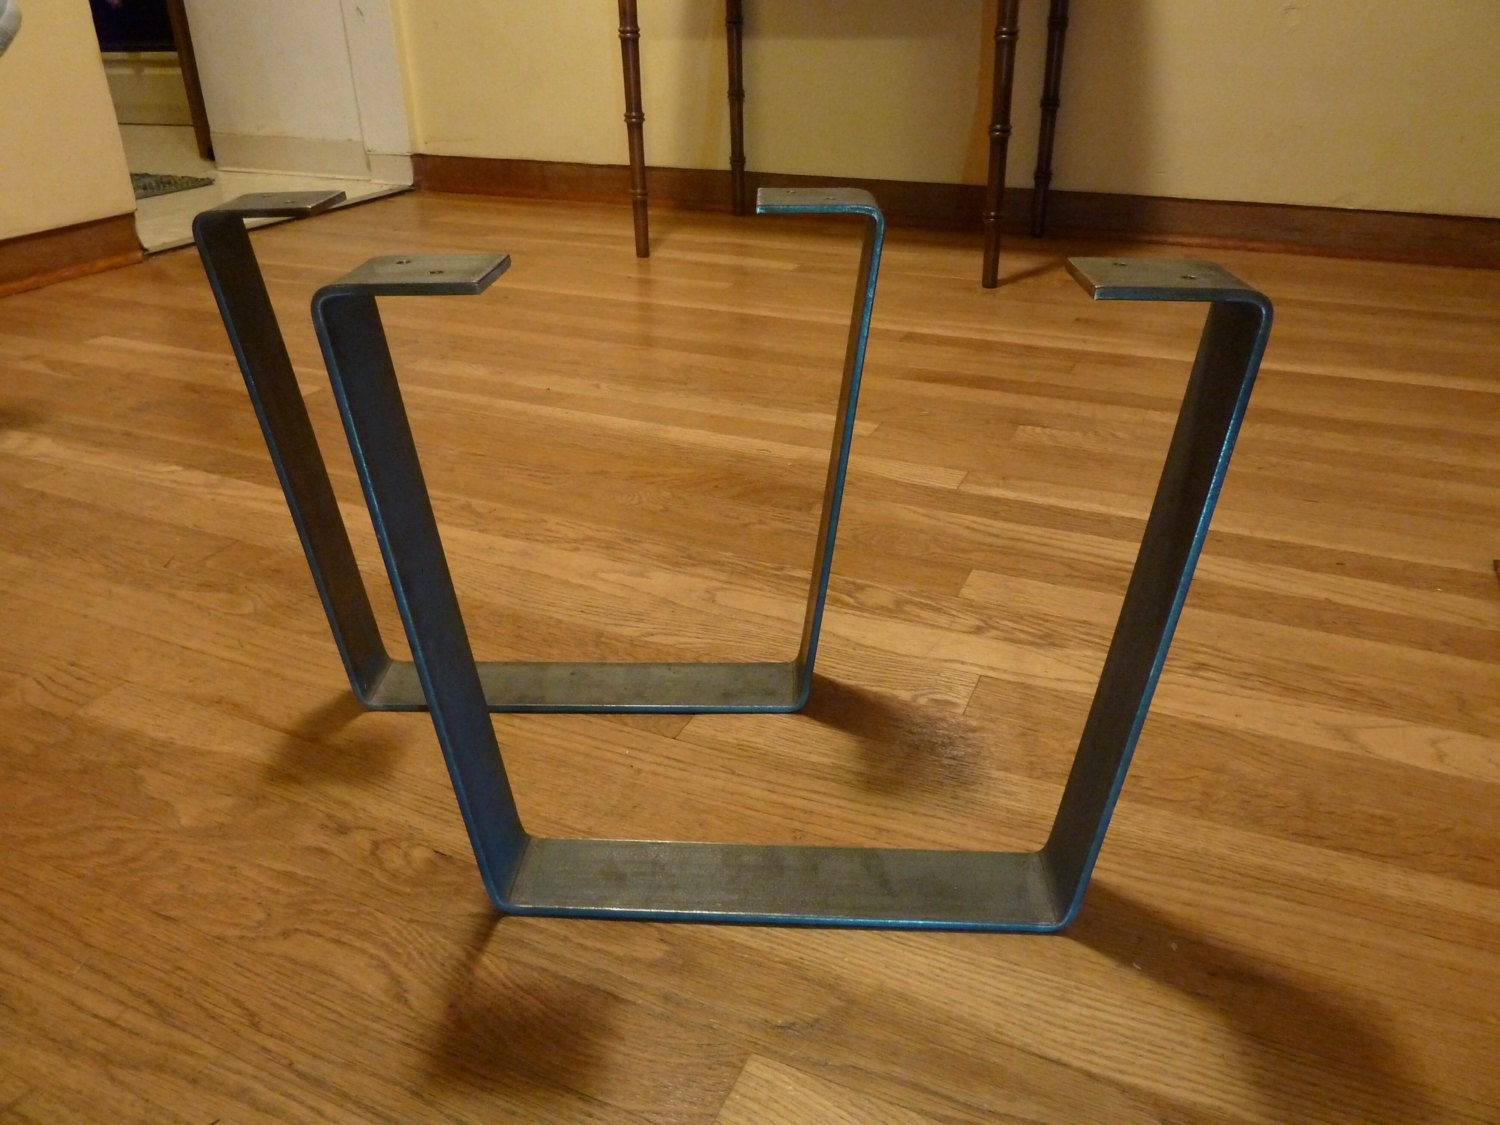 Metal coffee table legs 2 5 in steel flat bar trapezoid Legs for a coffee table